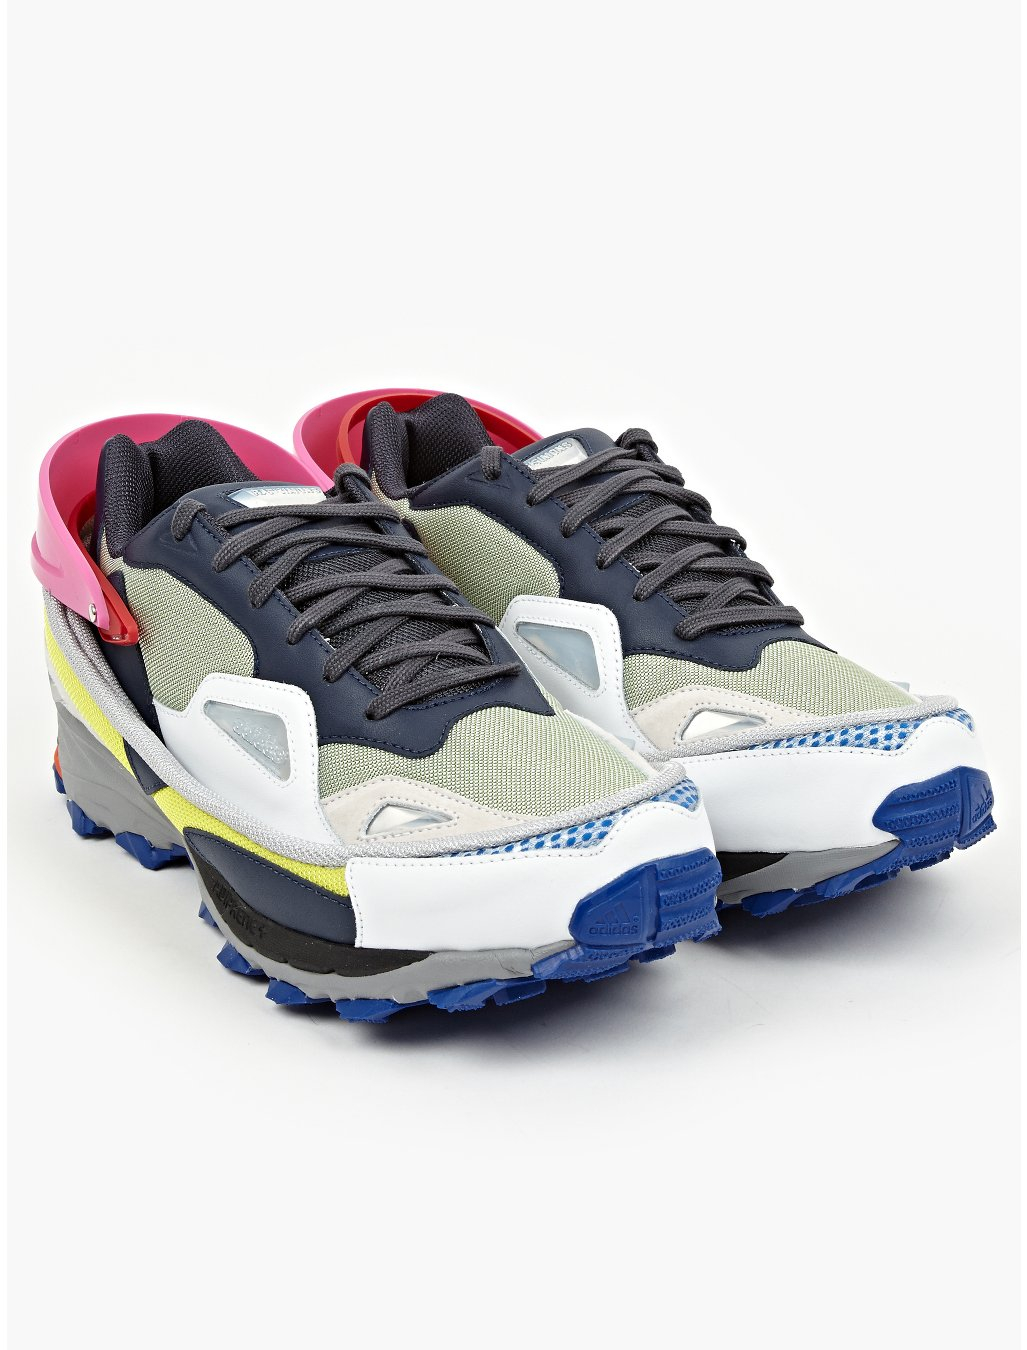 071df587fe25 Adidas By Raf Simons Mens Response Trail Sneakers in .